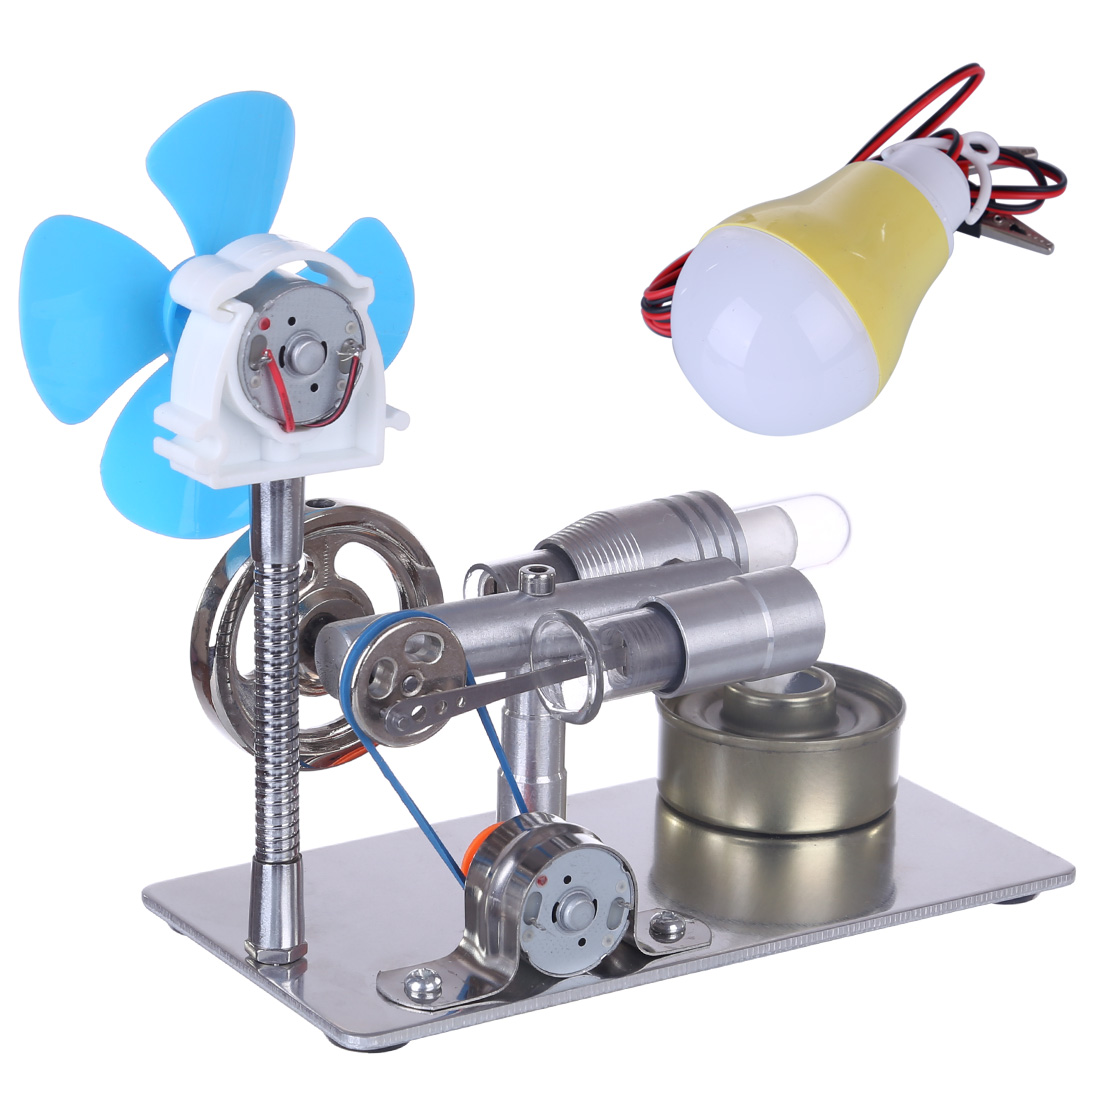 New 1 Set Single Cylinder Stirling Engine Model With Bulb And Fan With High Quality 2020 DIY Science Gifts-Random Bulb Color